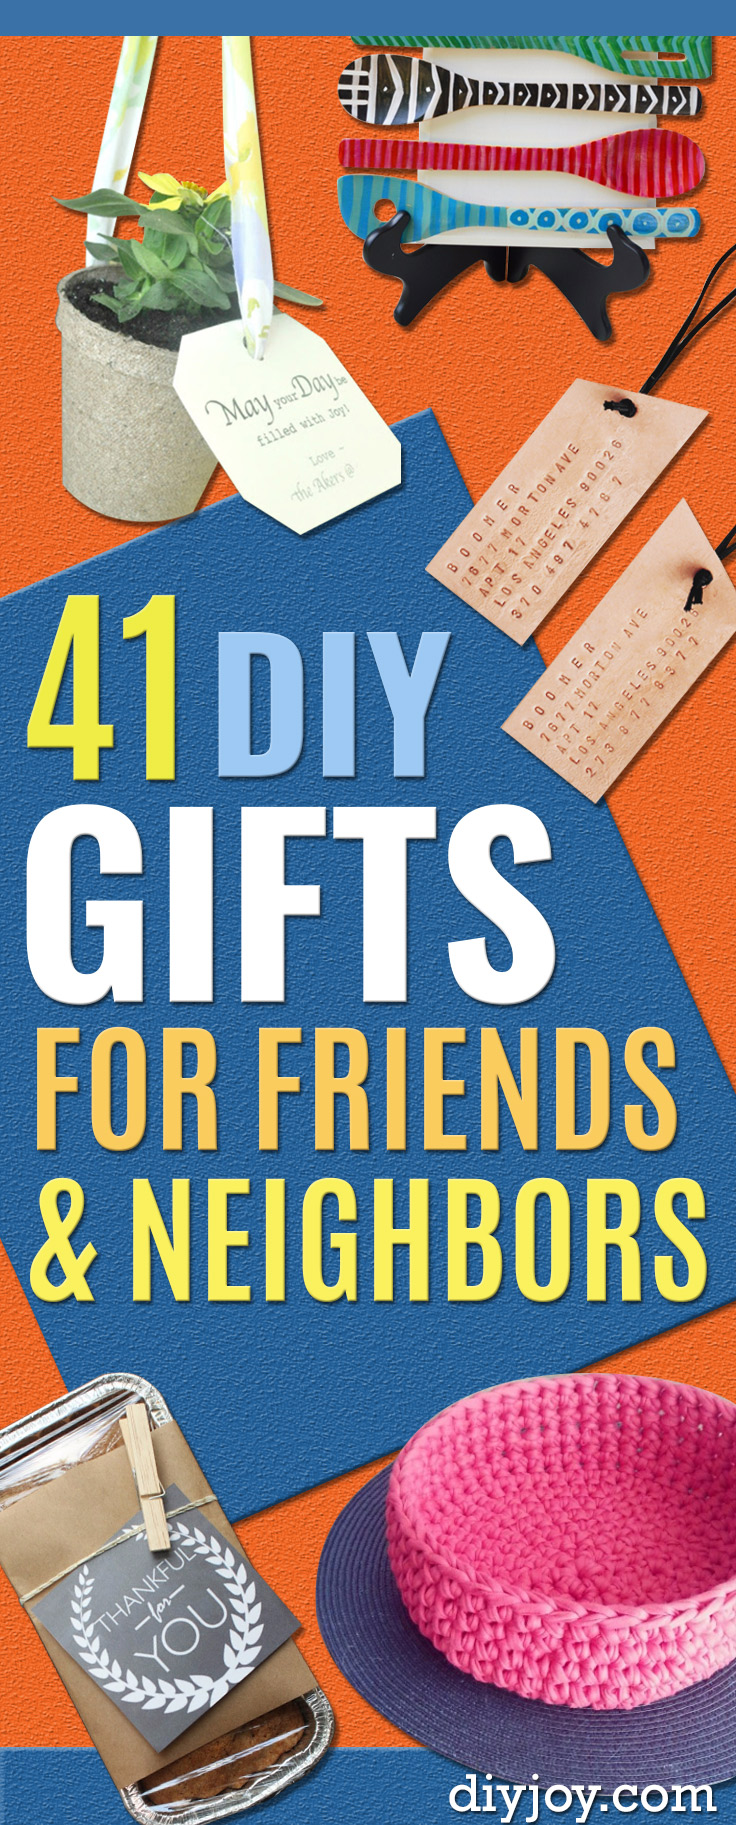 DIY Gifts - Pinterest Ideas to Make for Friends and Neighbors - Creative, Thoughtful Handmade DYI Gifts